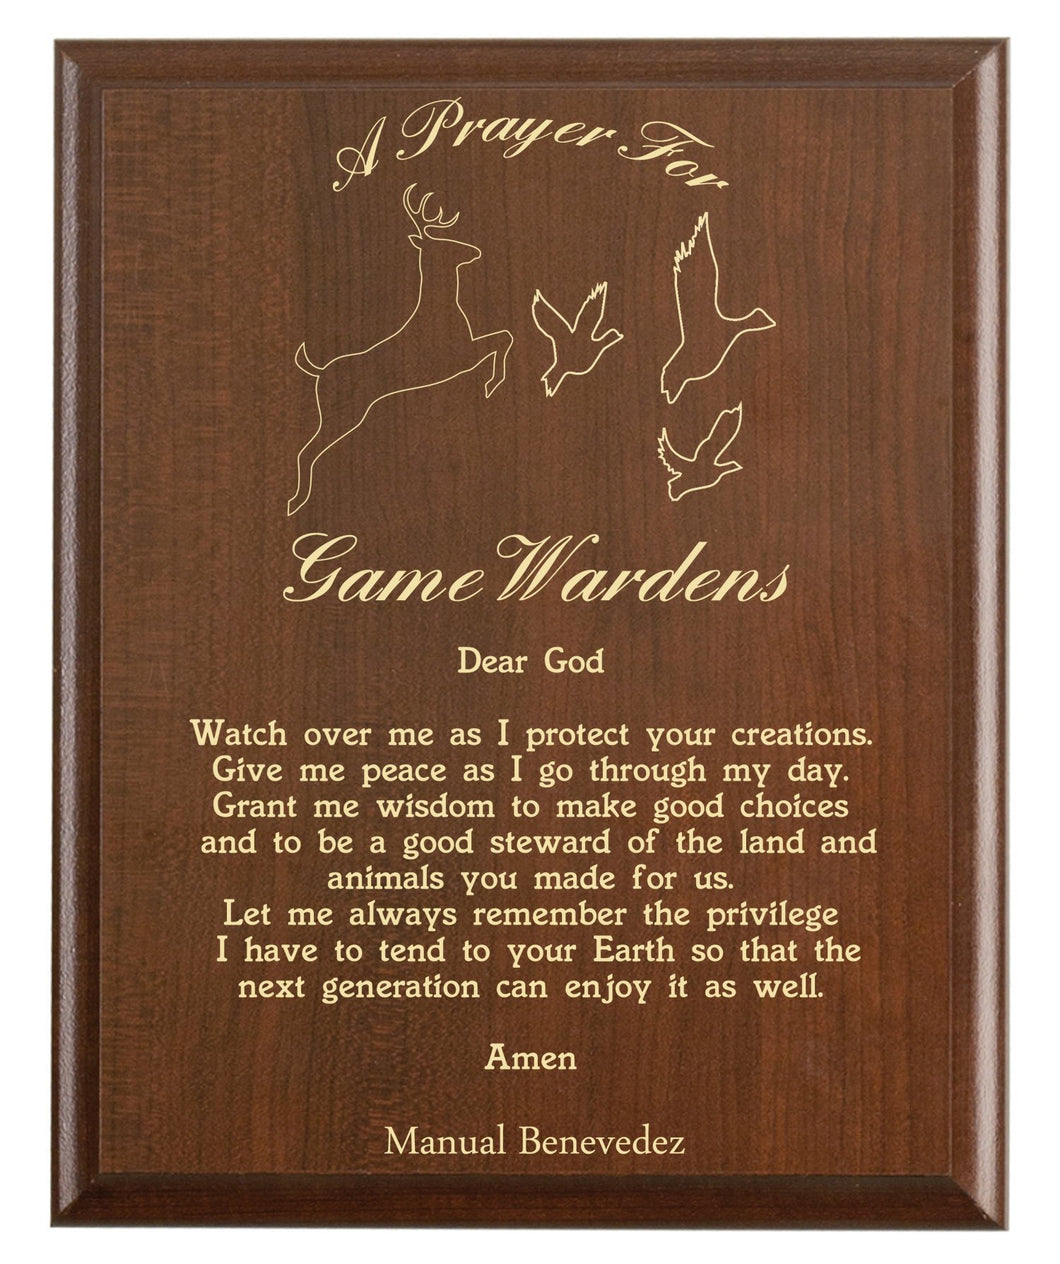 Christian prayer for a game warden with industry logo and free personalization. Cherry finish with laser engraved text.